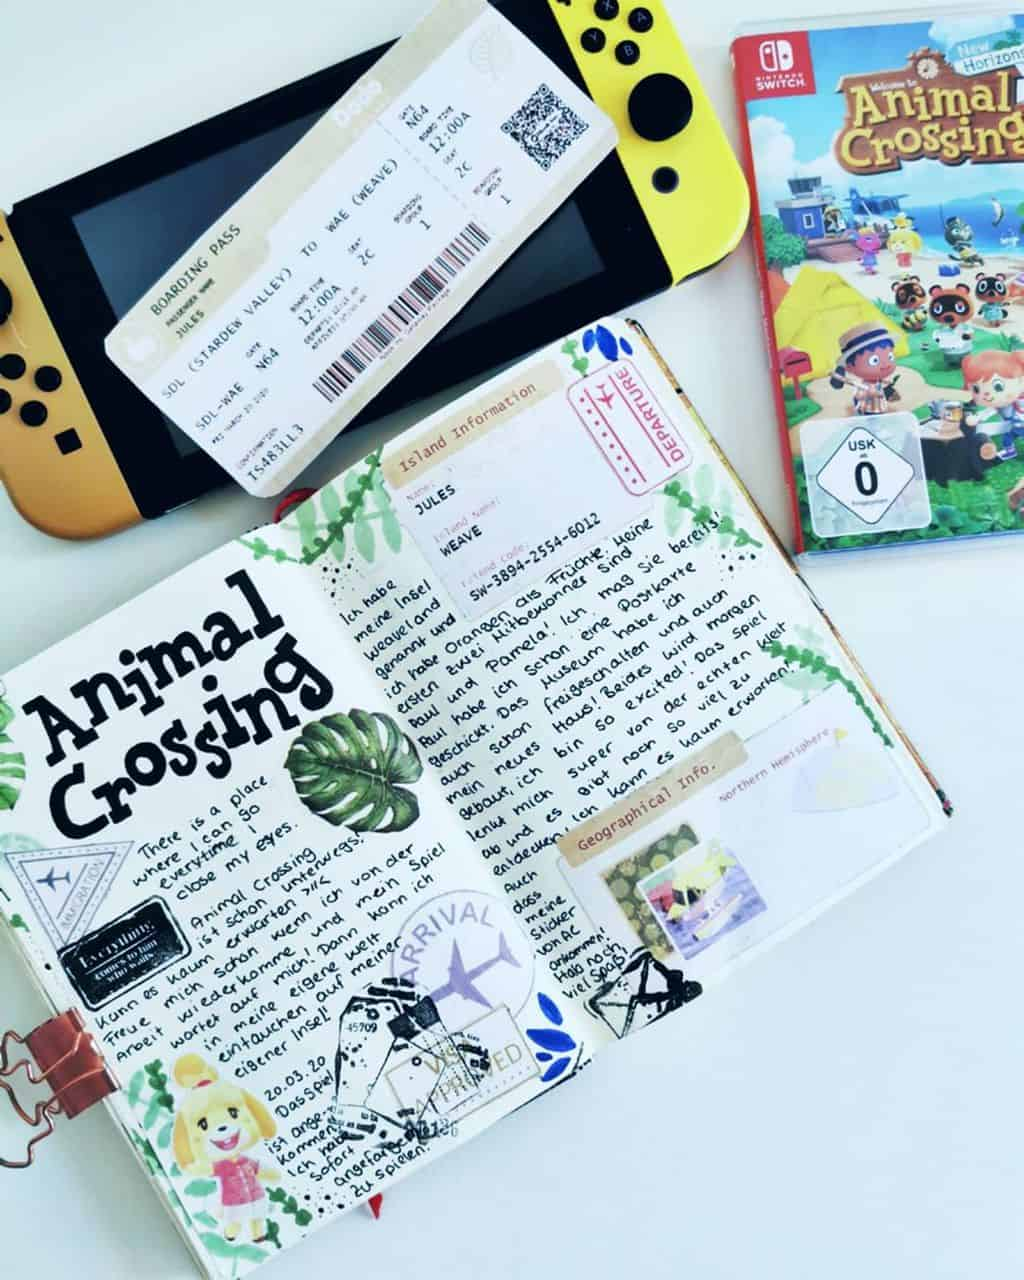 Animal Crossing Bullet Journal Inspirations - spread by @jules.art.design | Masha Plans